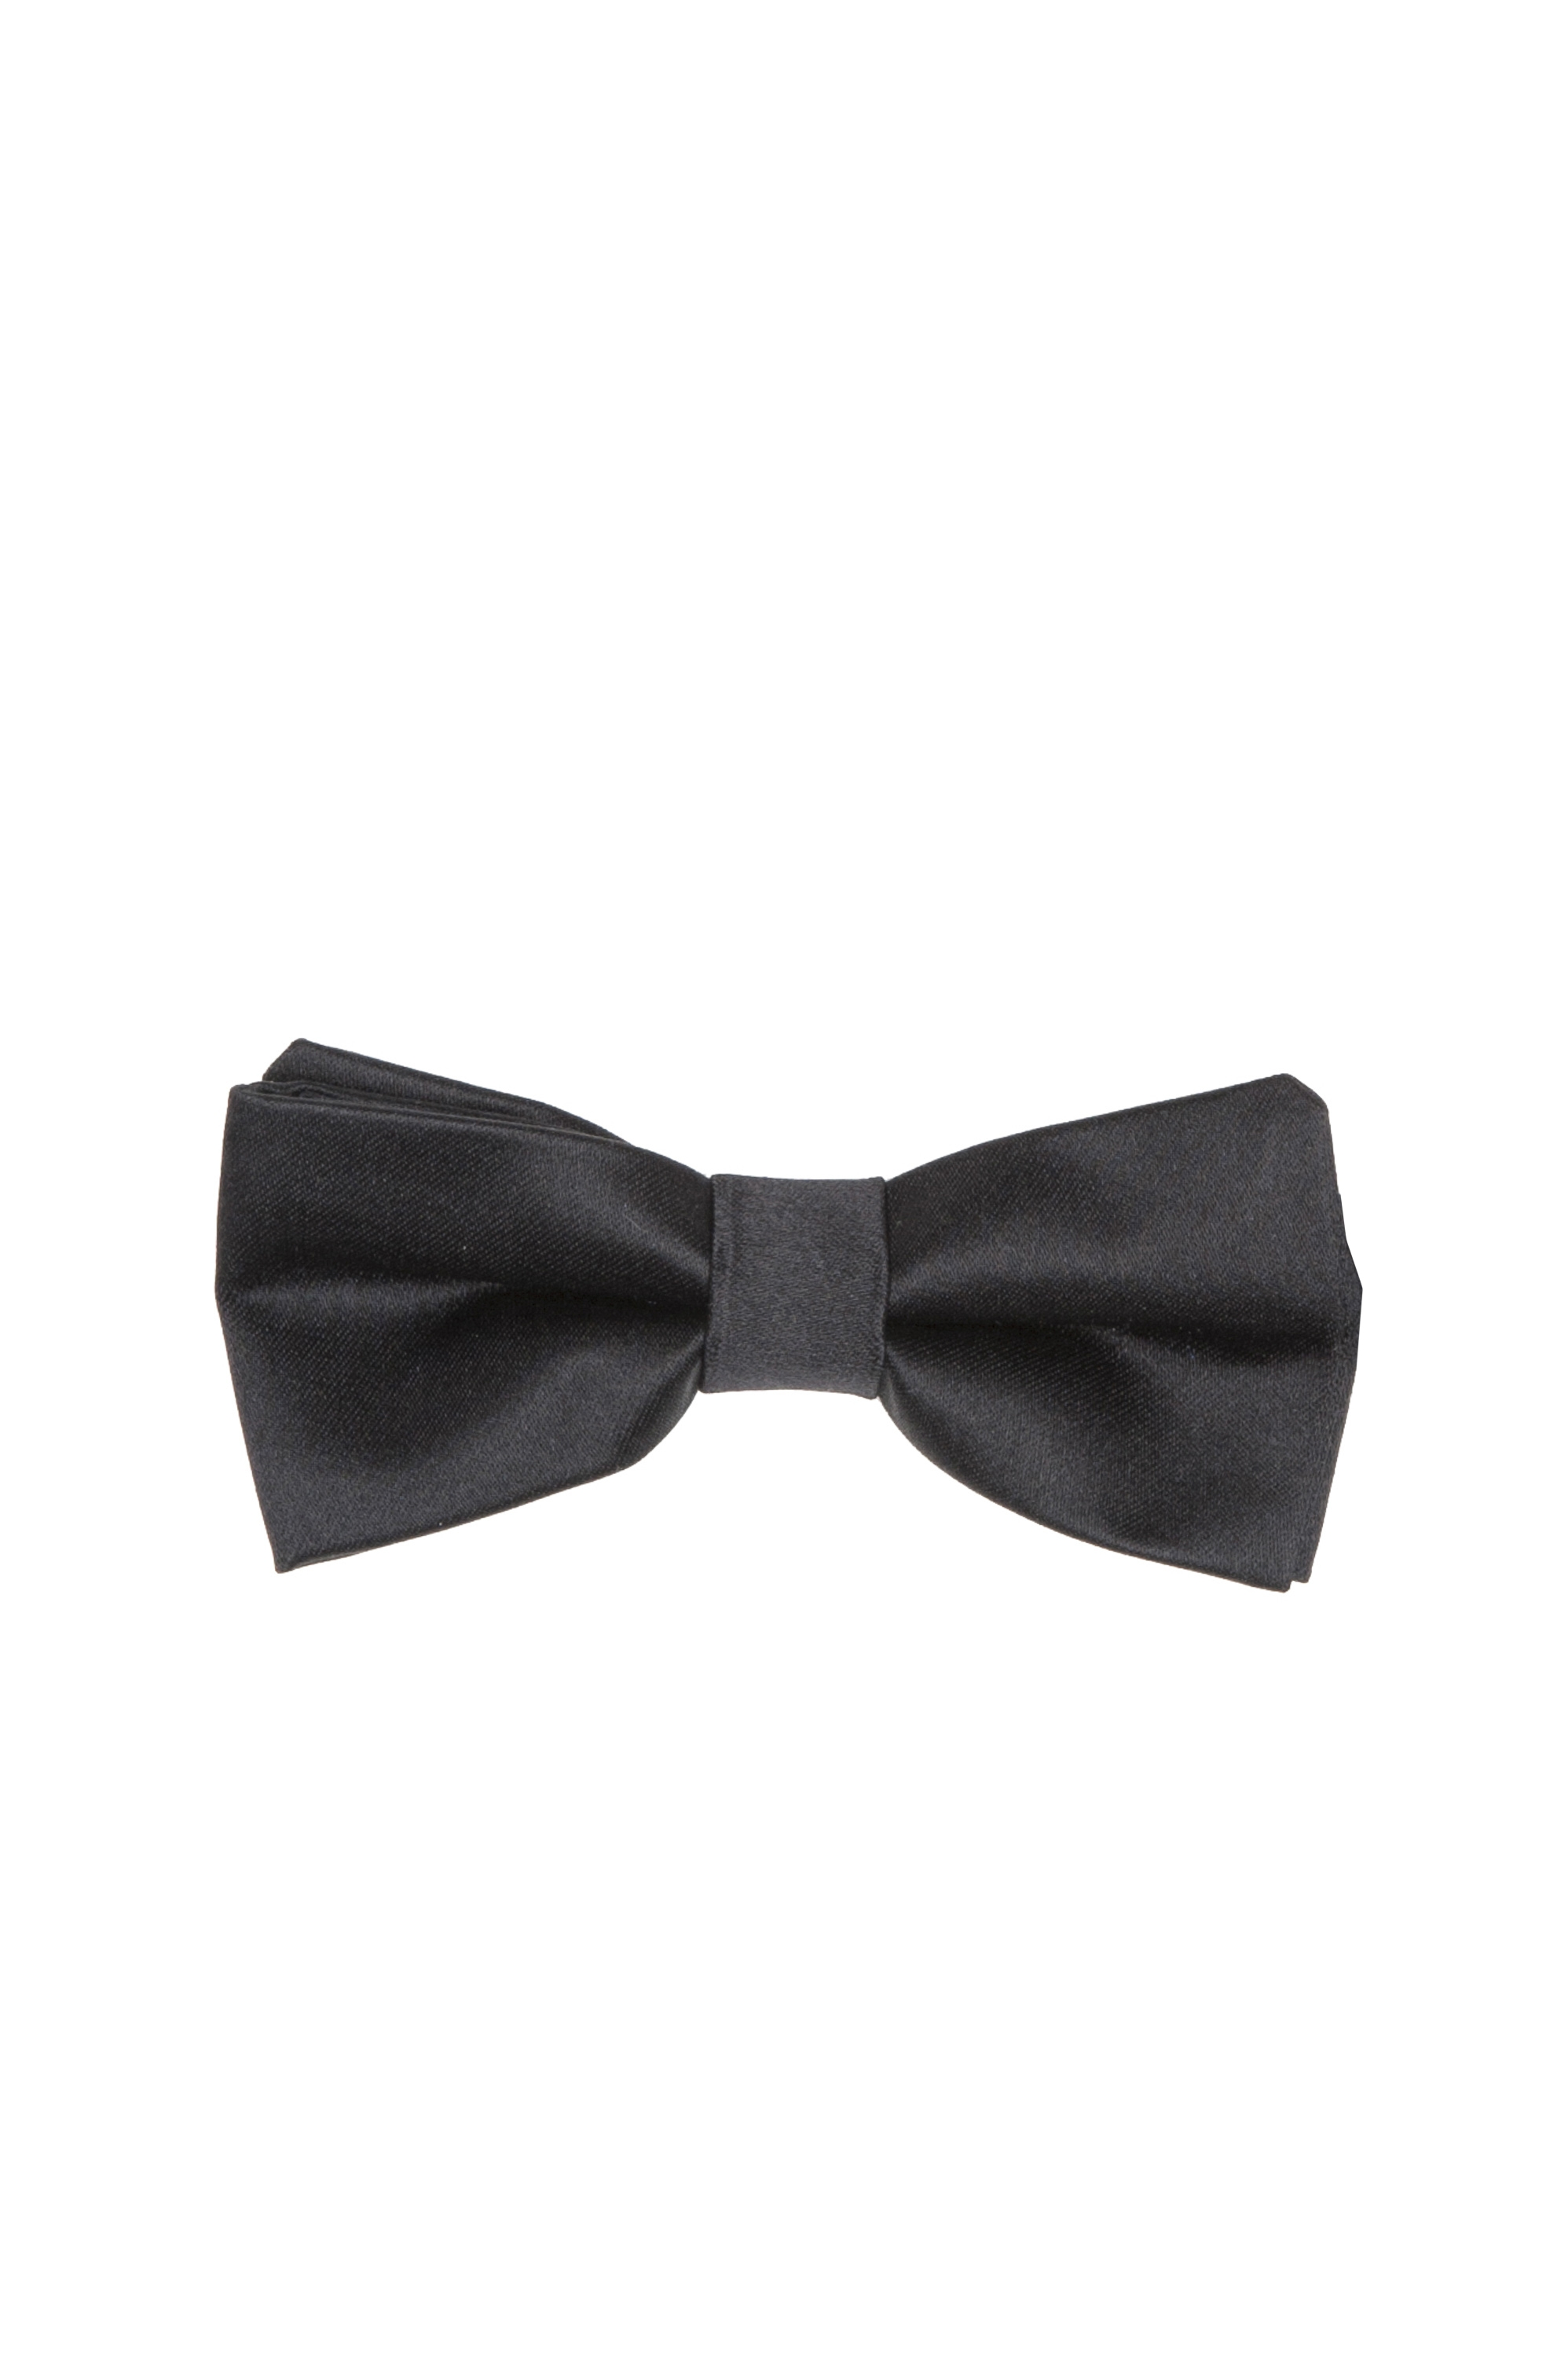 SBU 01030 Classic ready-tied bow tie in black silk satin 01